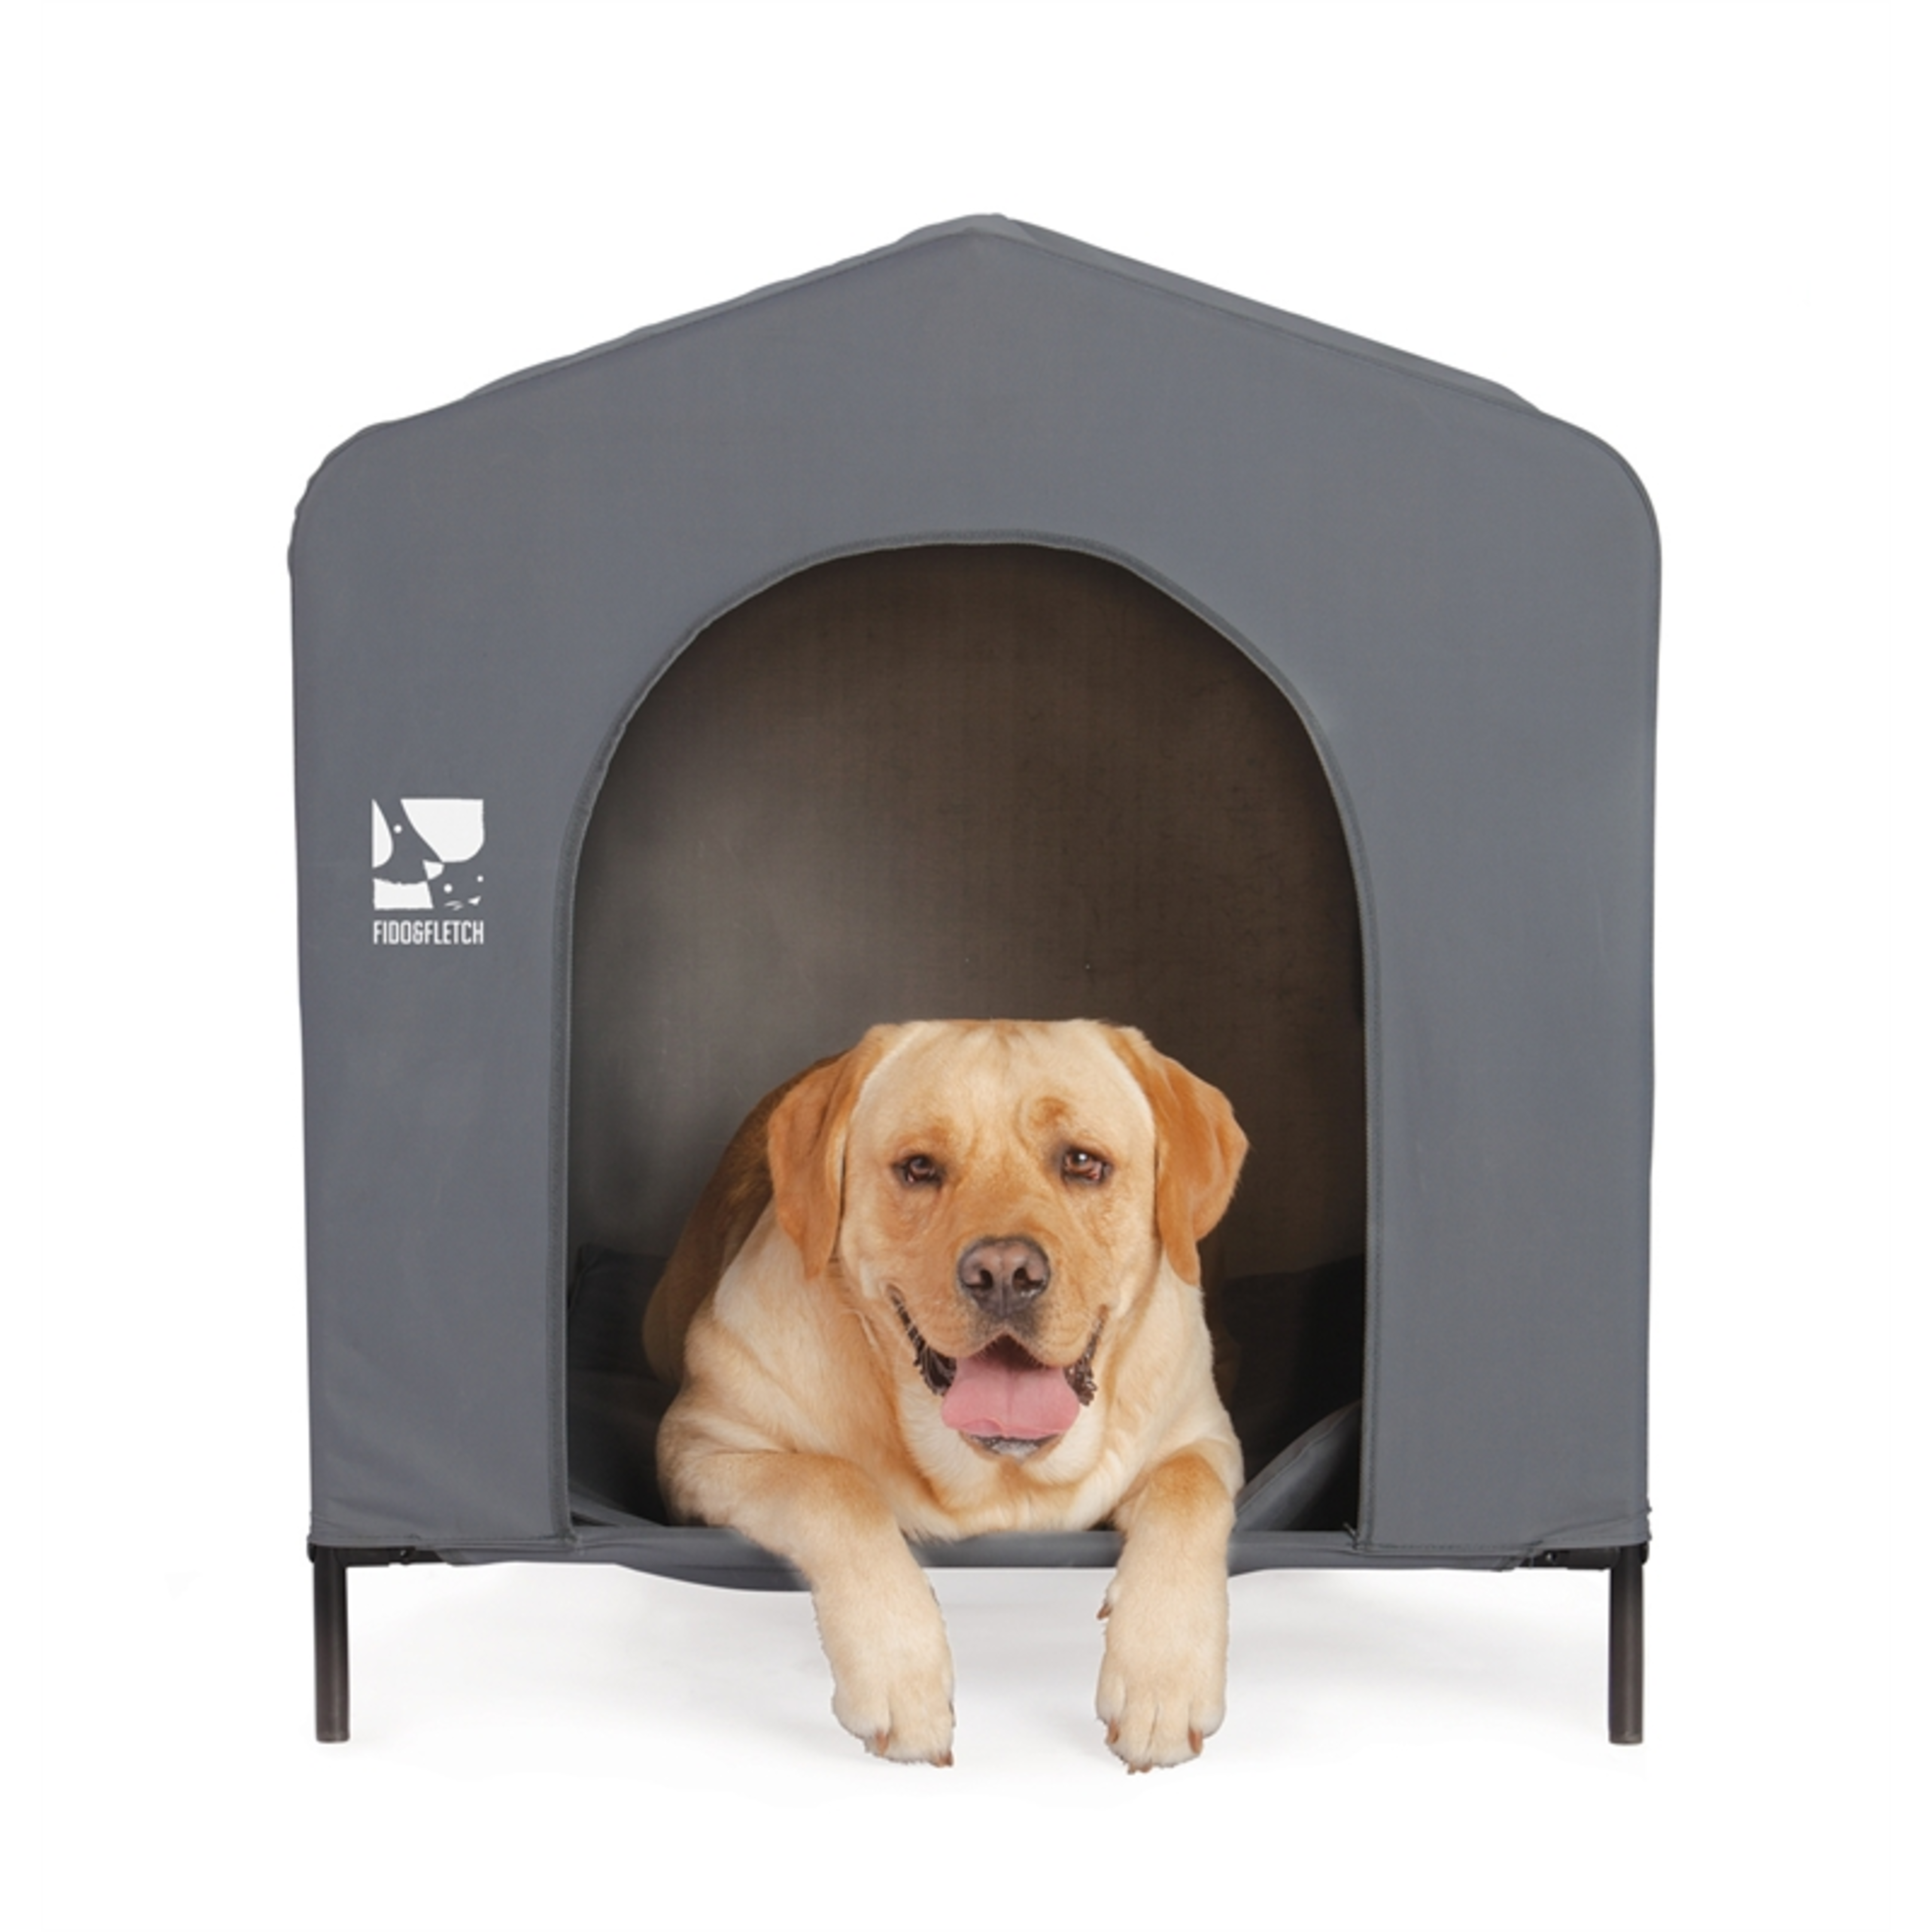 Large dog in soft kennel